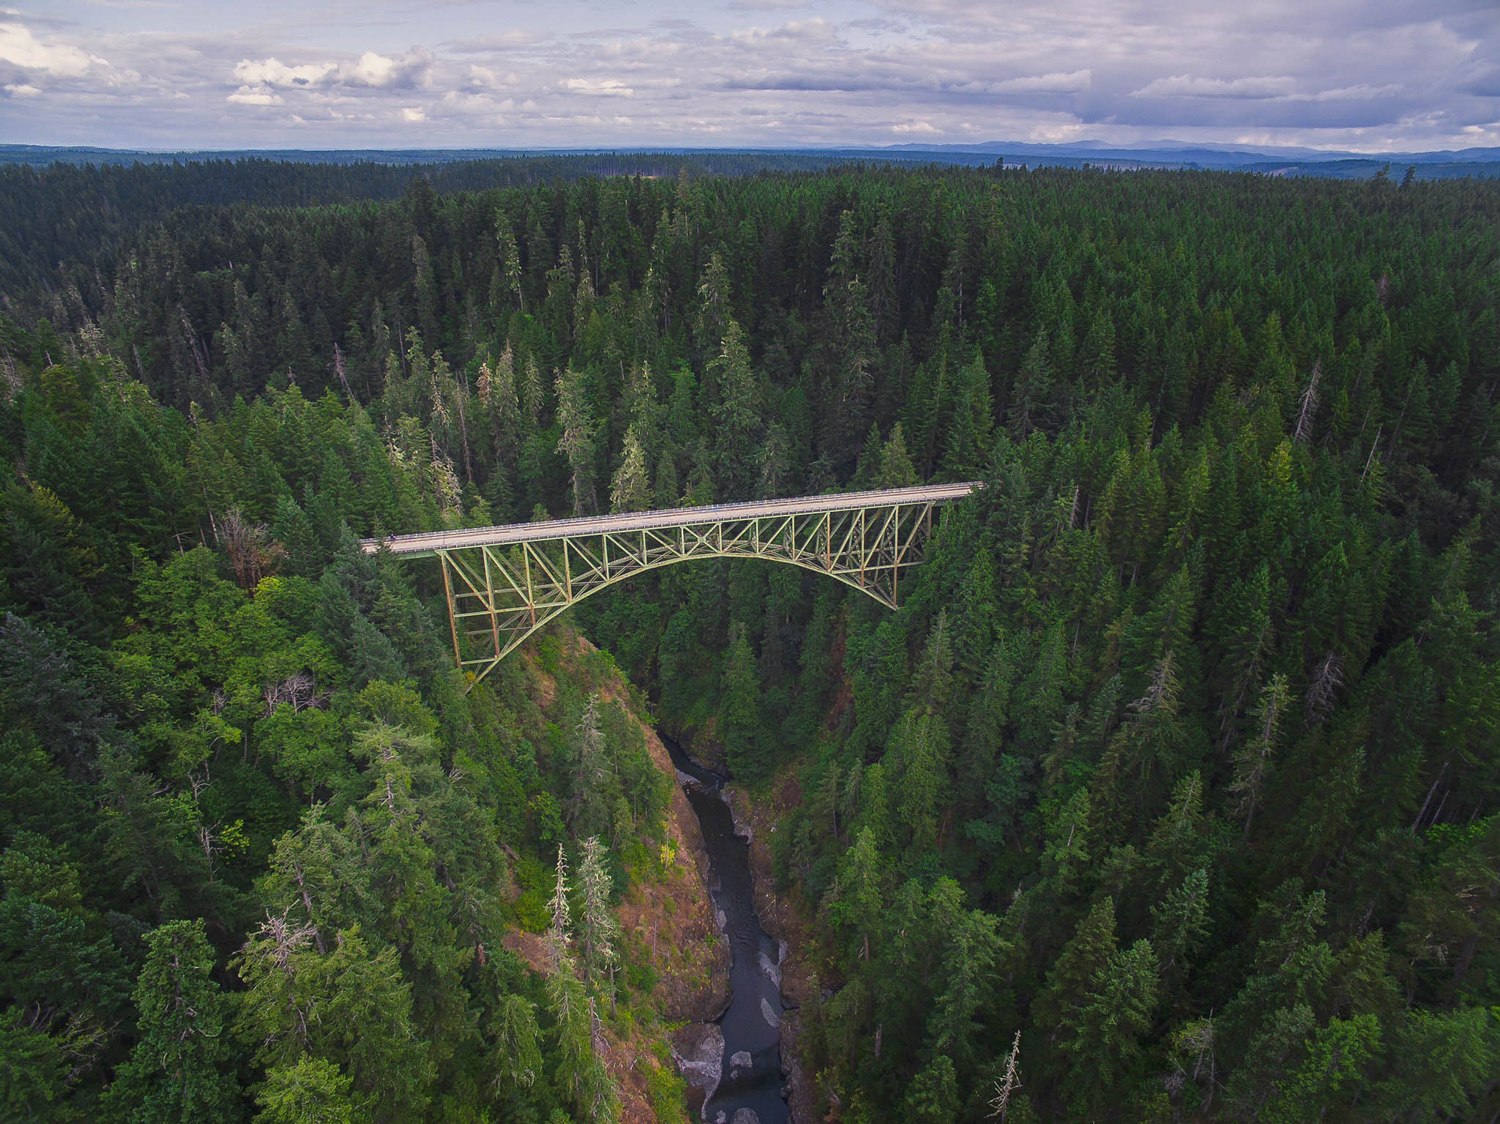 aerial-view-trees-bridge-river-drone-greg-unsplash.png